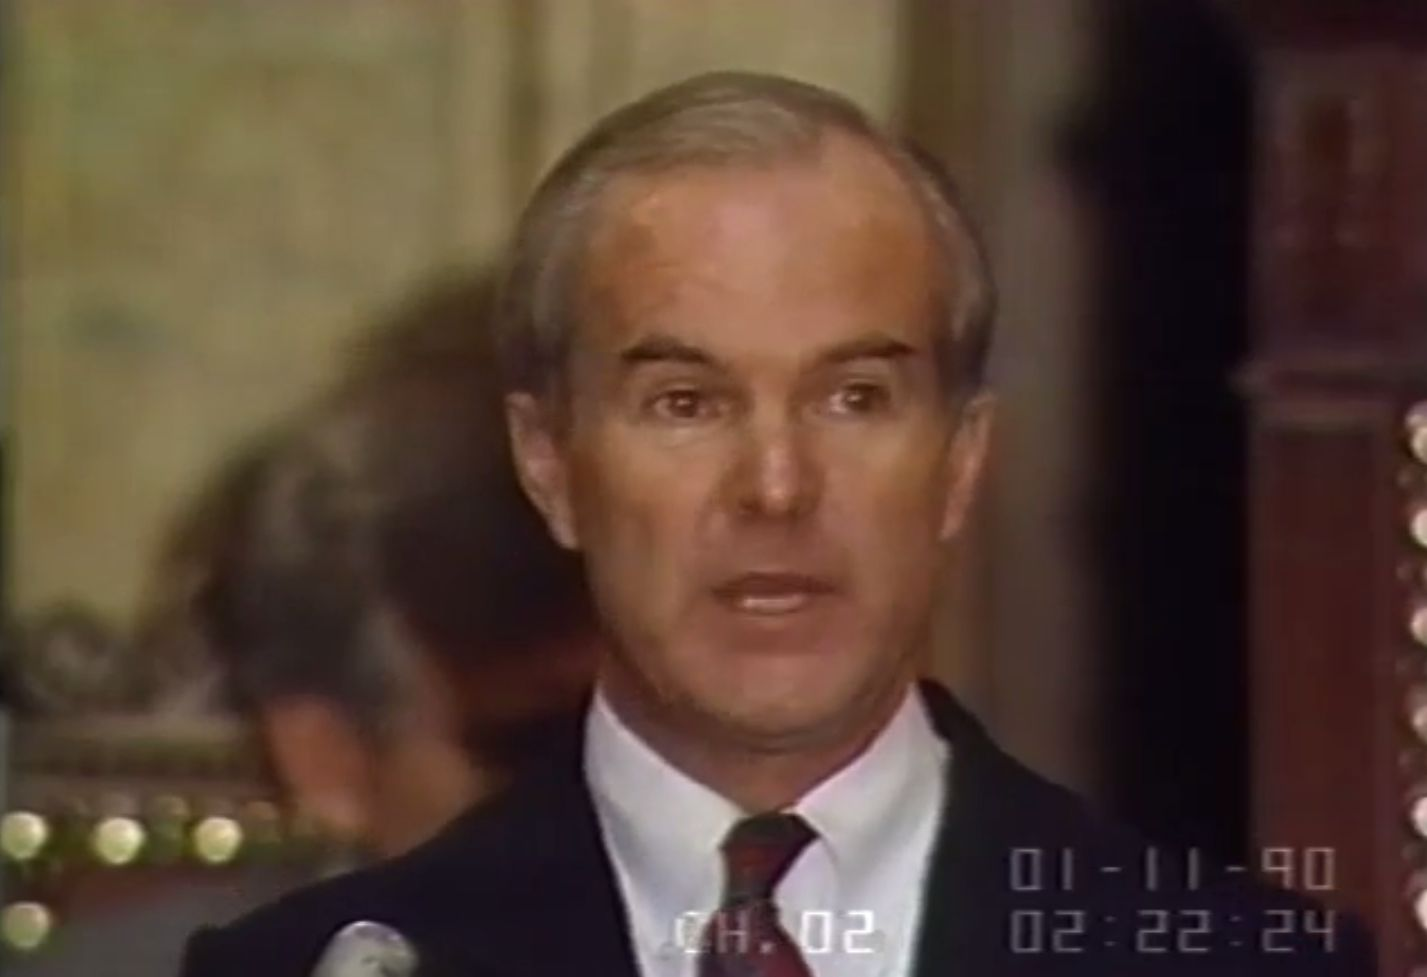 Booth Gardener, the former Governor of Washington State spoke highly of the Task Force on Community Protection during his 1990  State of the State Address .